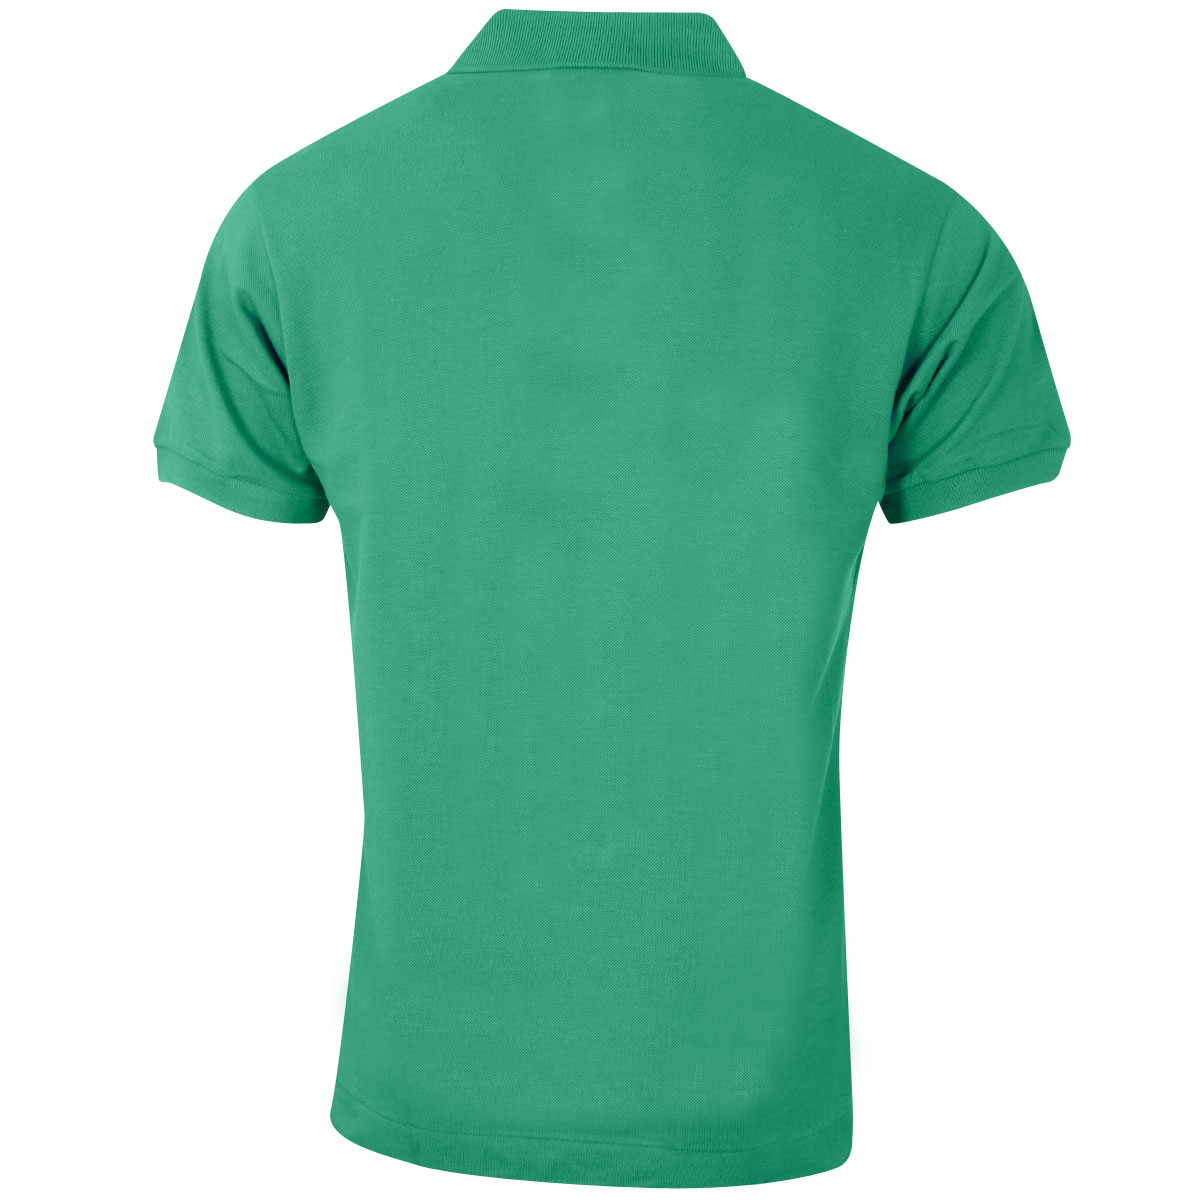 Lacoste-Mens-Classic-Cotton-L1212-Short-Sleeve-Polo-Shirt-26-OFF-RRP thumbnail 47